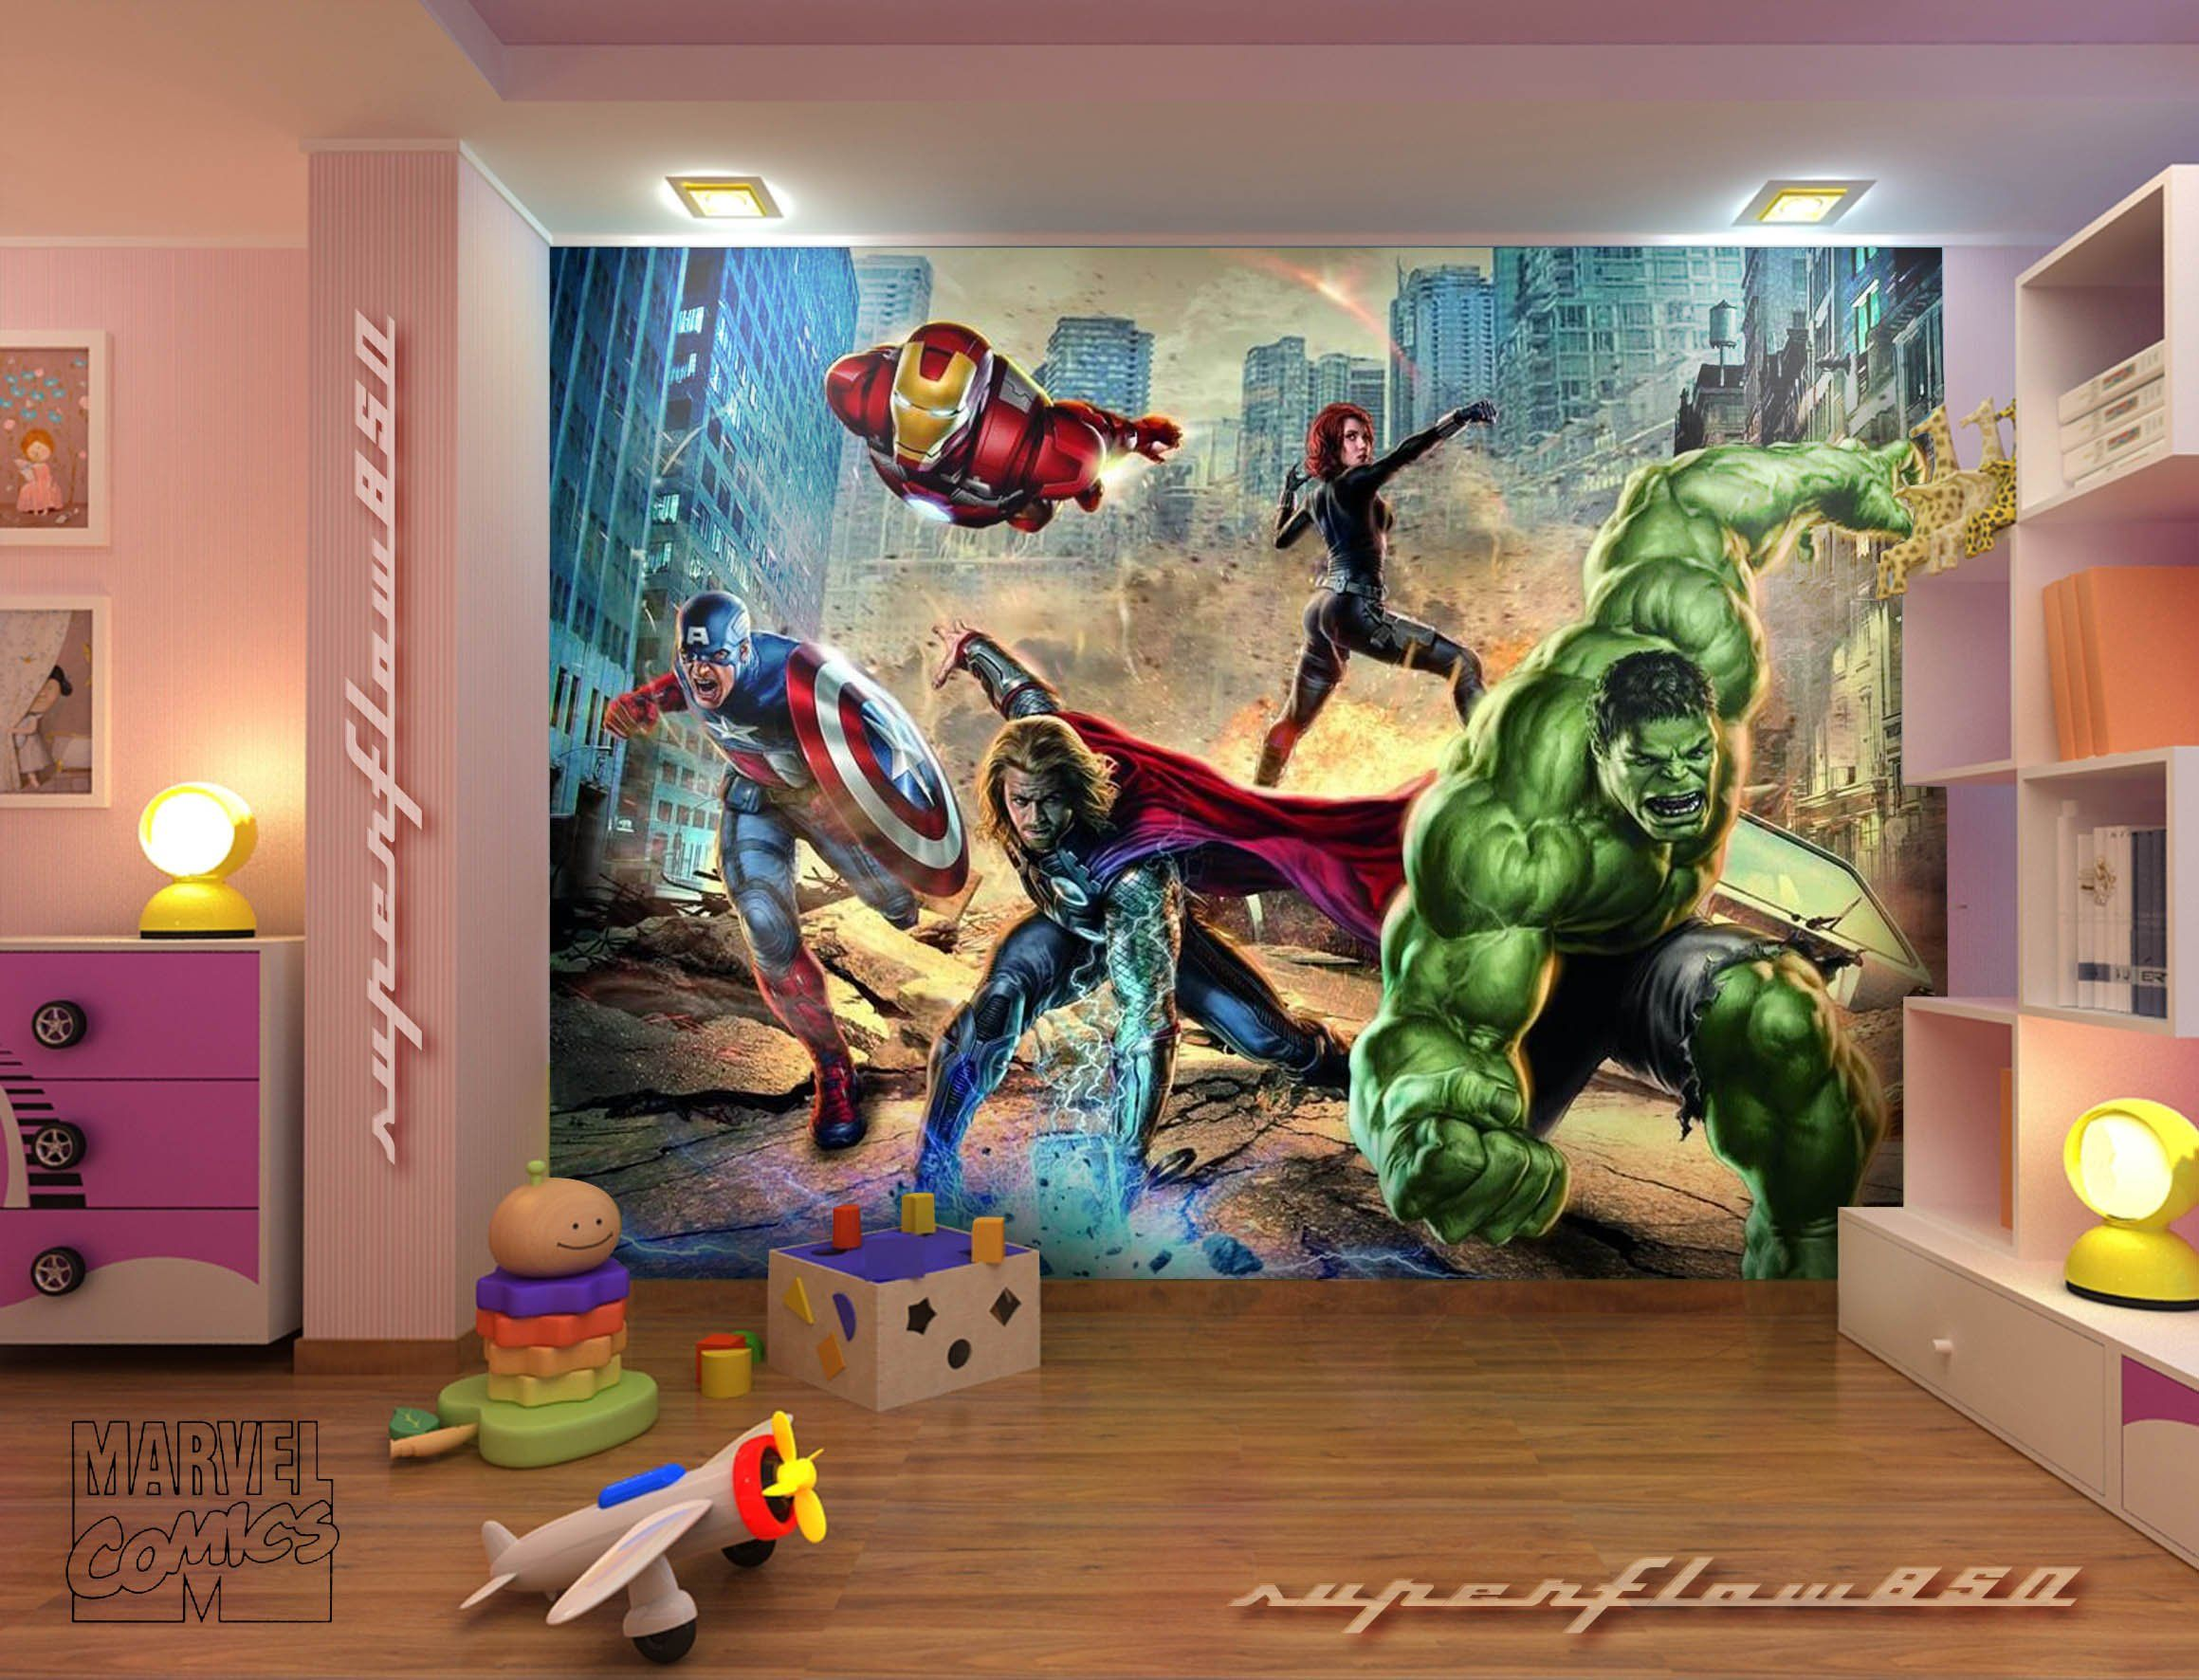 Avengers street rage marvel photo wallpaper wall mural for Diy photographic mural